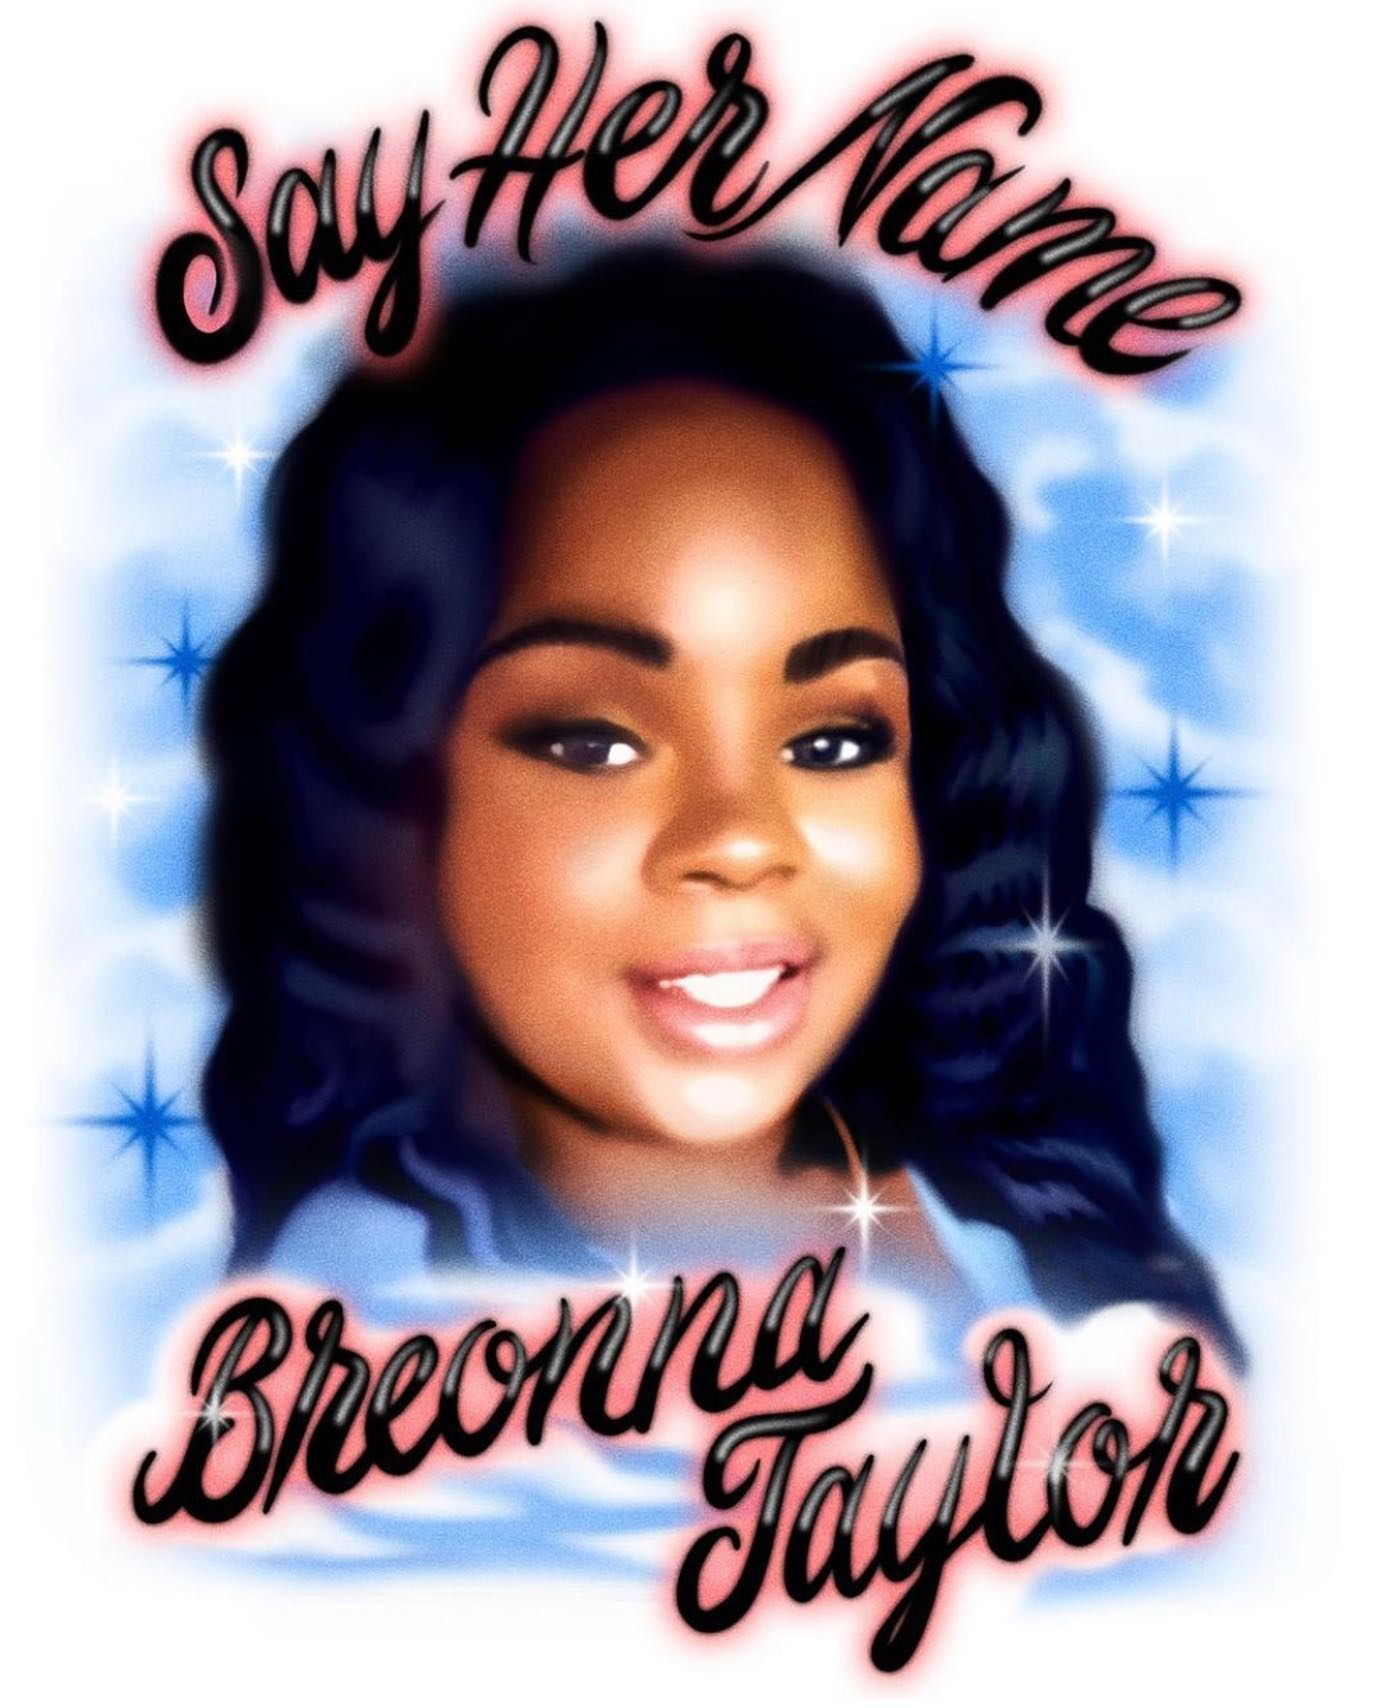 Today Is Your Birthday Breonna Taylor You Would Have Been 27 Years Old We Remember And We Keep Fighting In 2020 Breonna Taylor Today Is Your Birthday Say Her Name